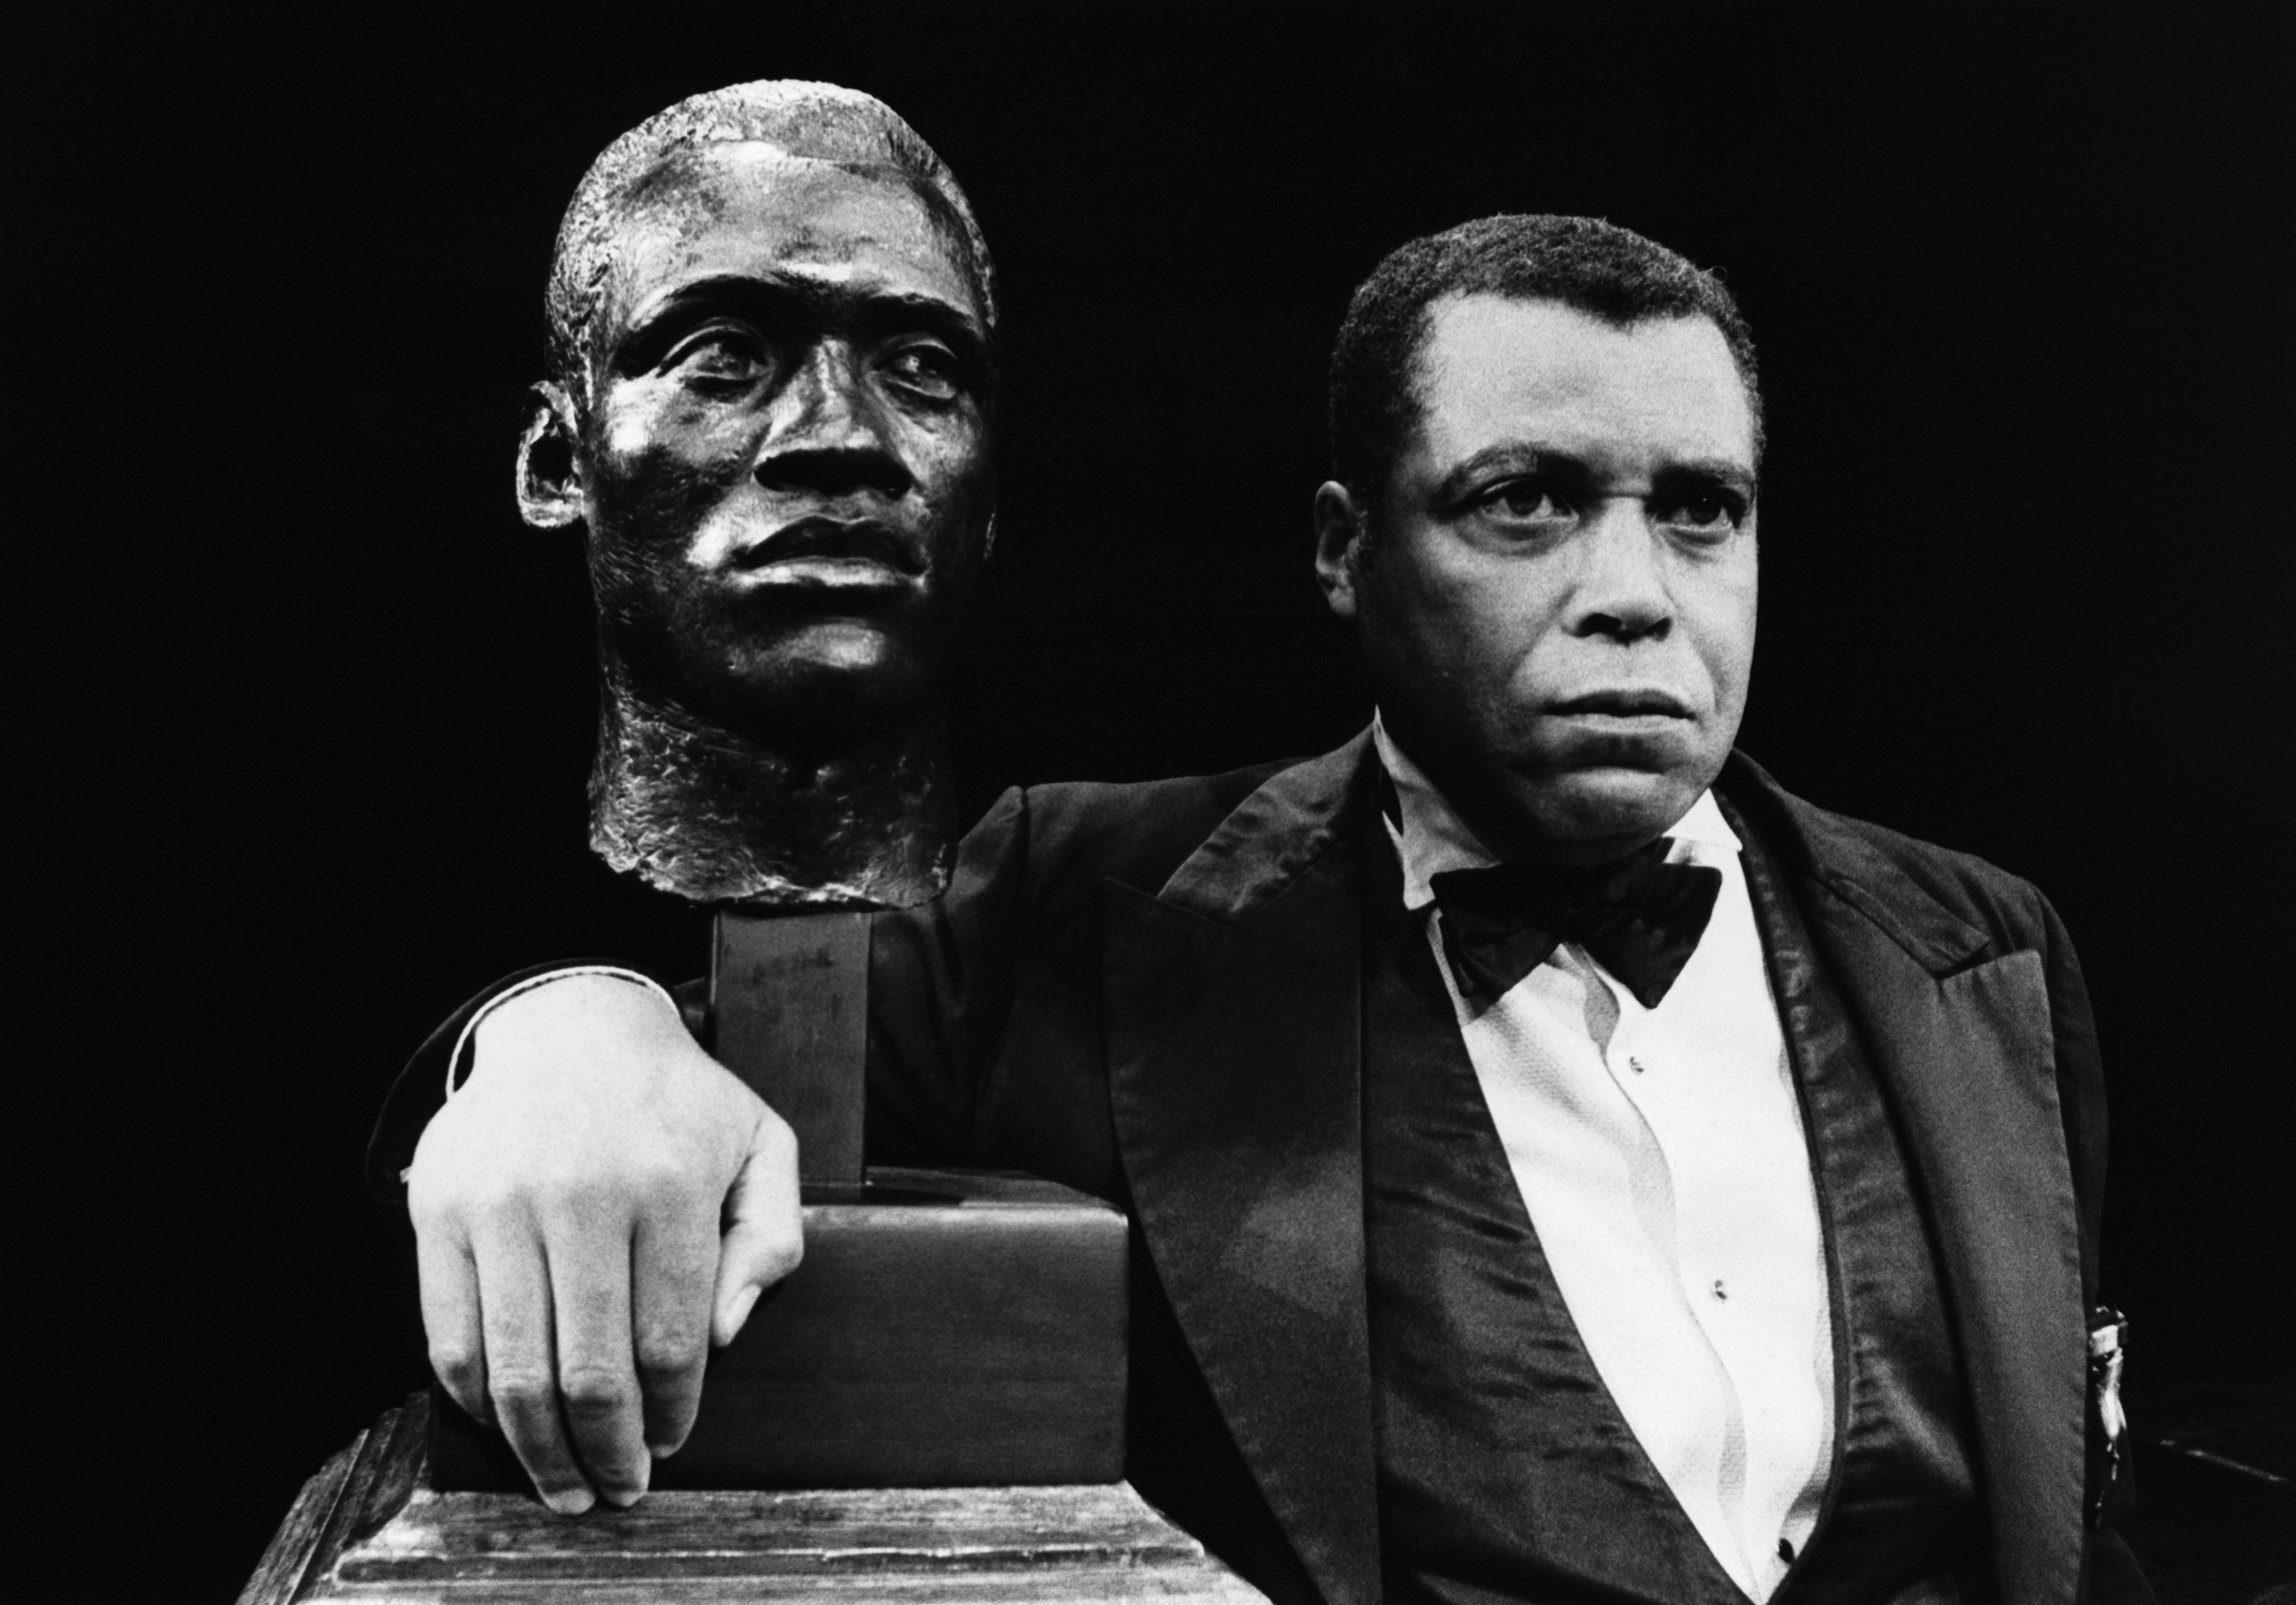 James Earl Jones Poses With Bust